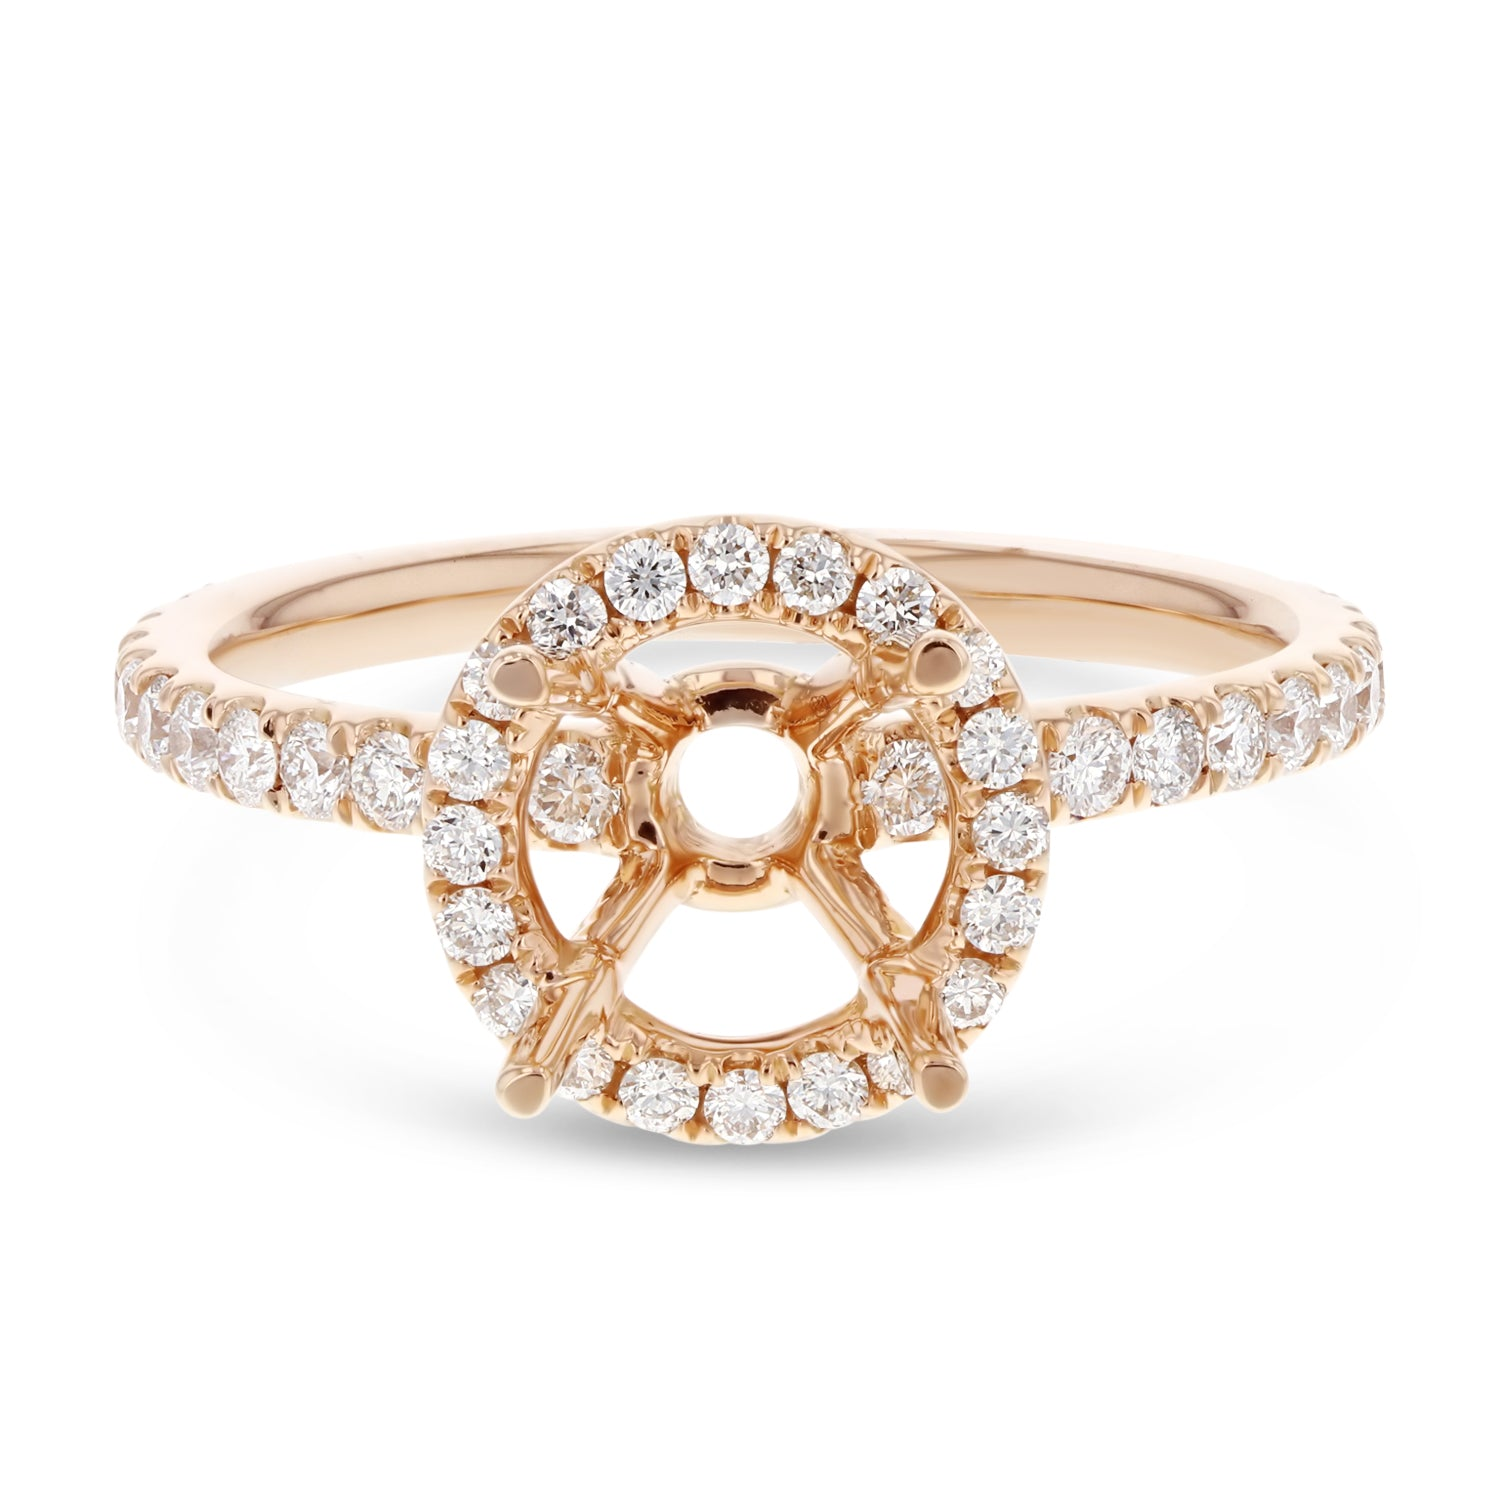 18K Rose Gold Semi-mount Ring, 0.61 Carats